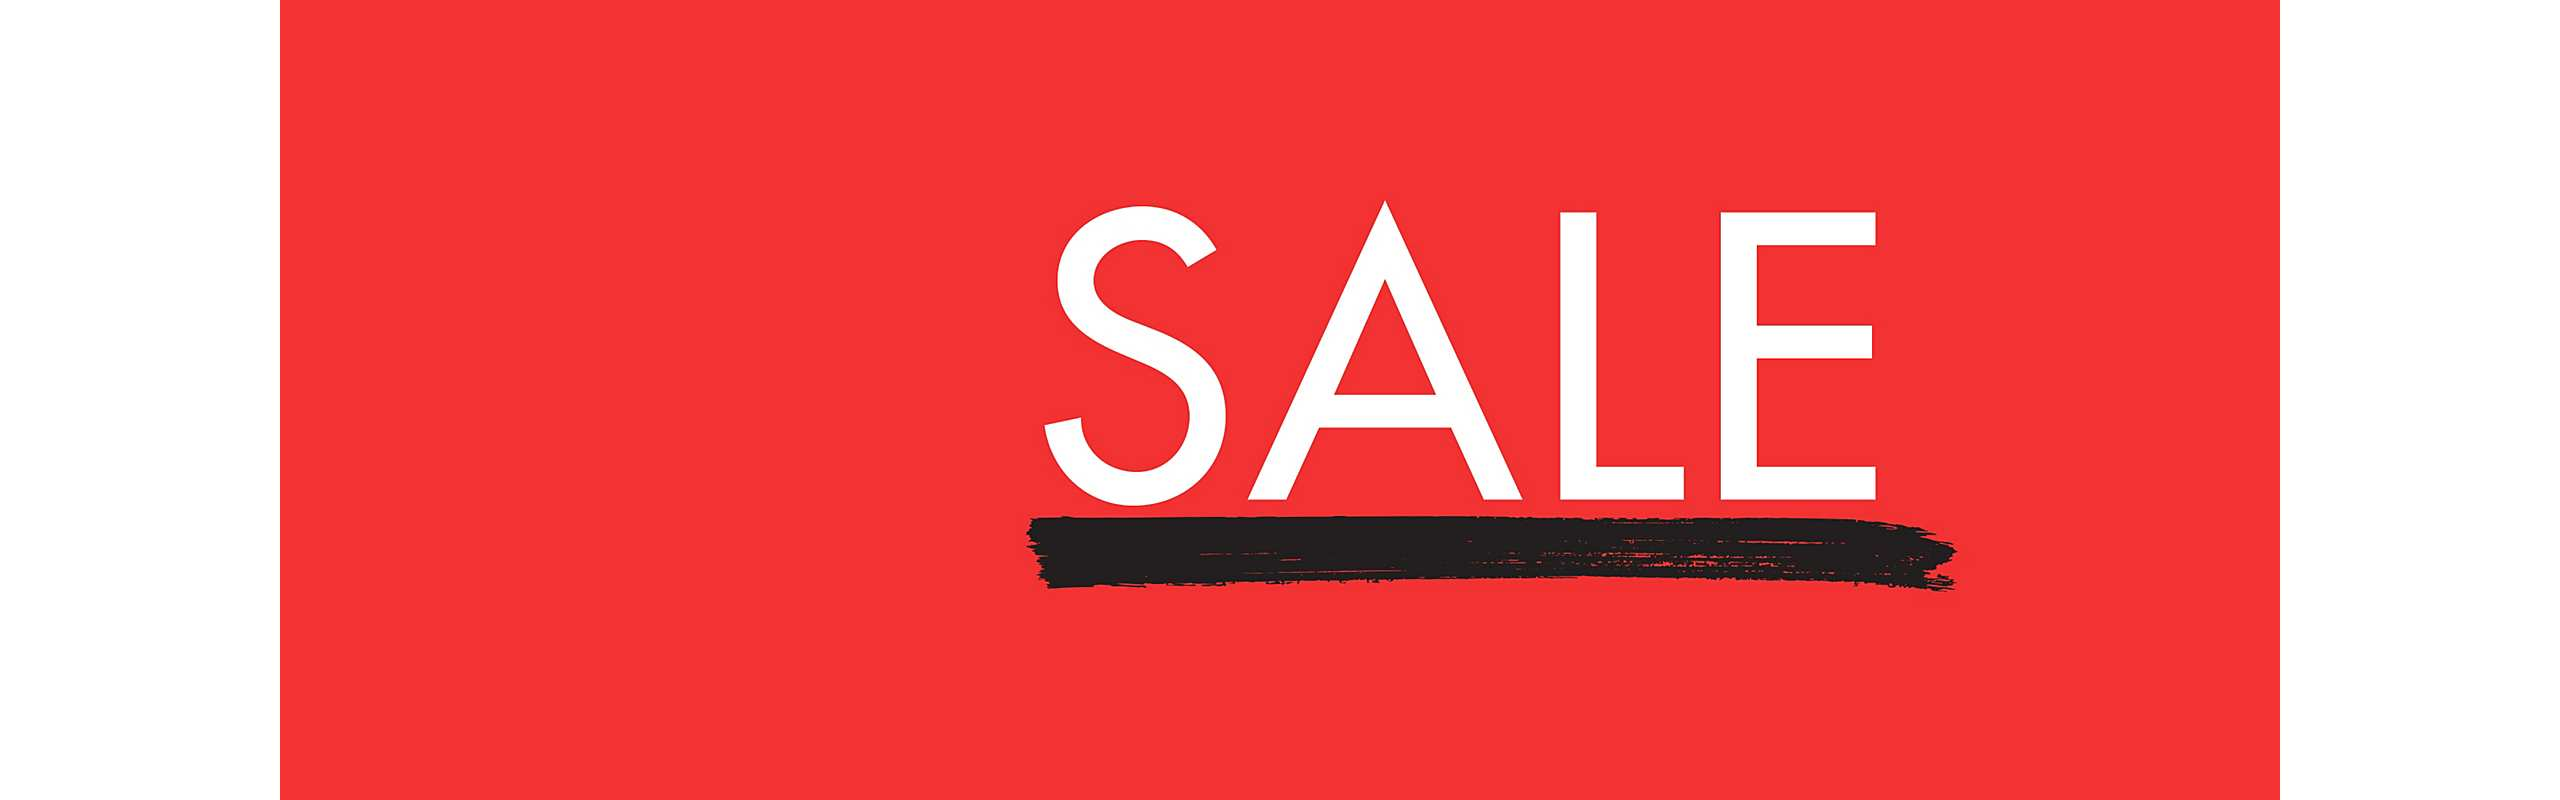 Save 60% off on select jewelry + new markdowns on diamonds, gemstones, pearls and more at BlueNile.com